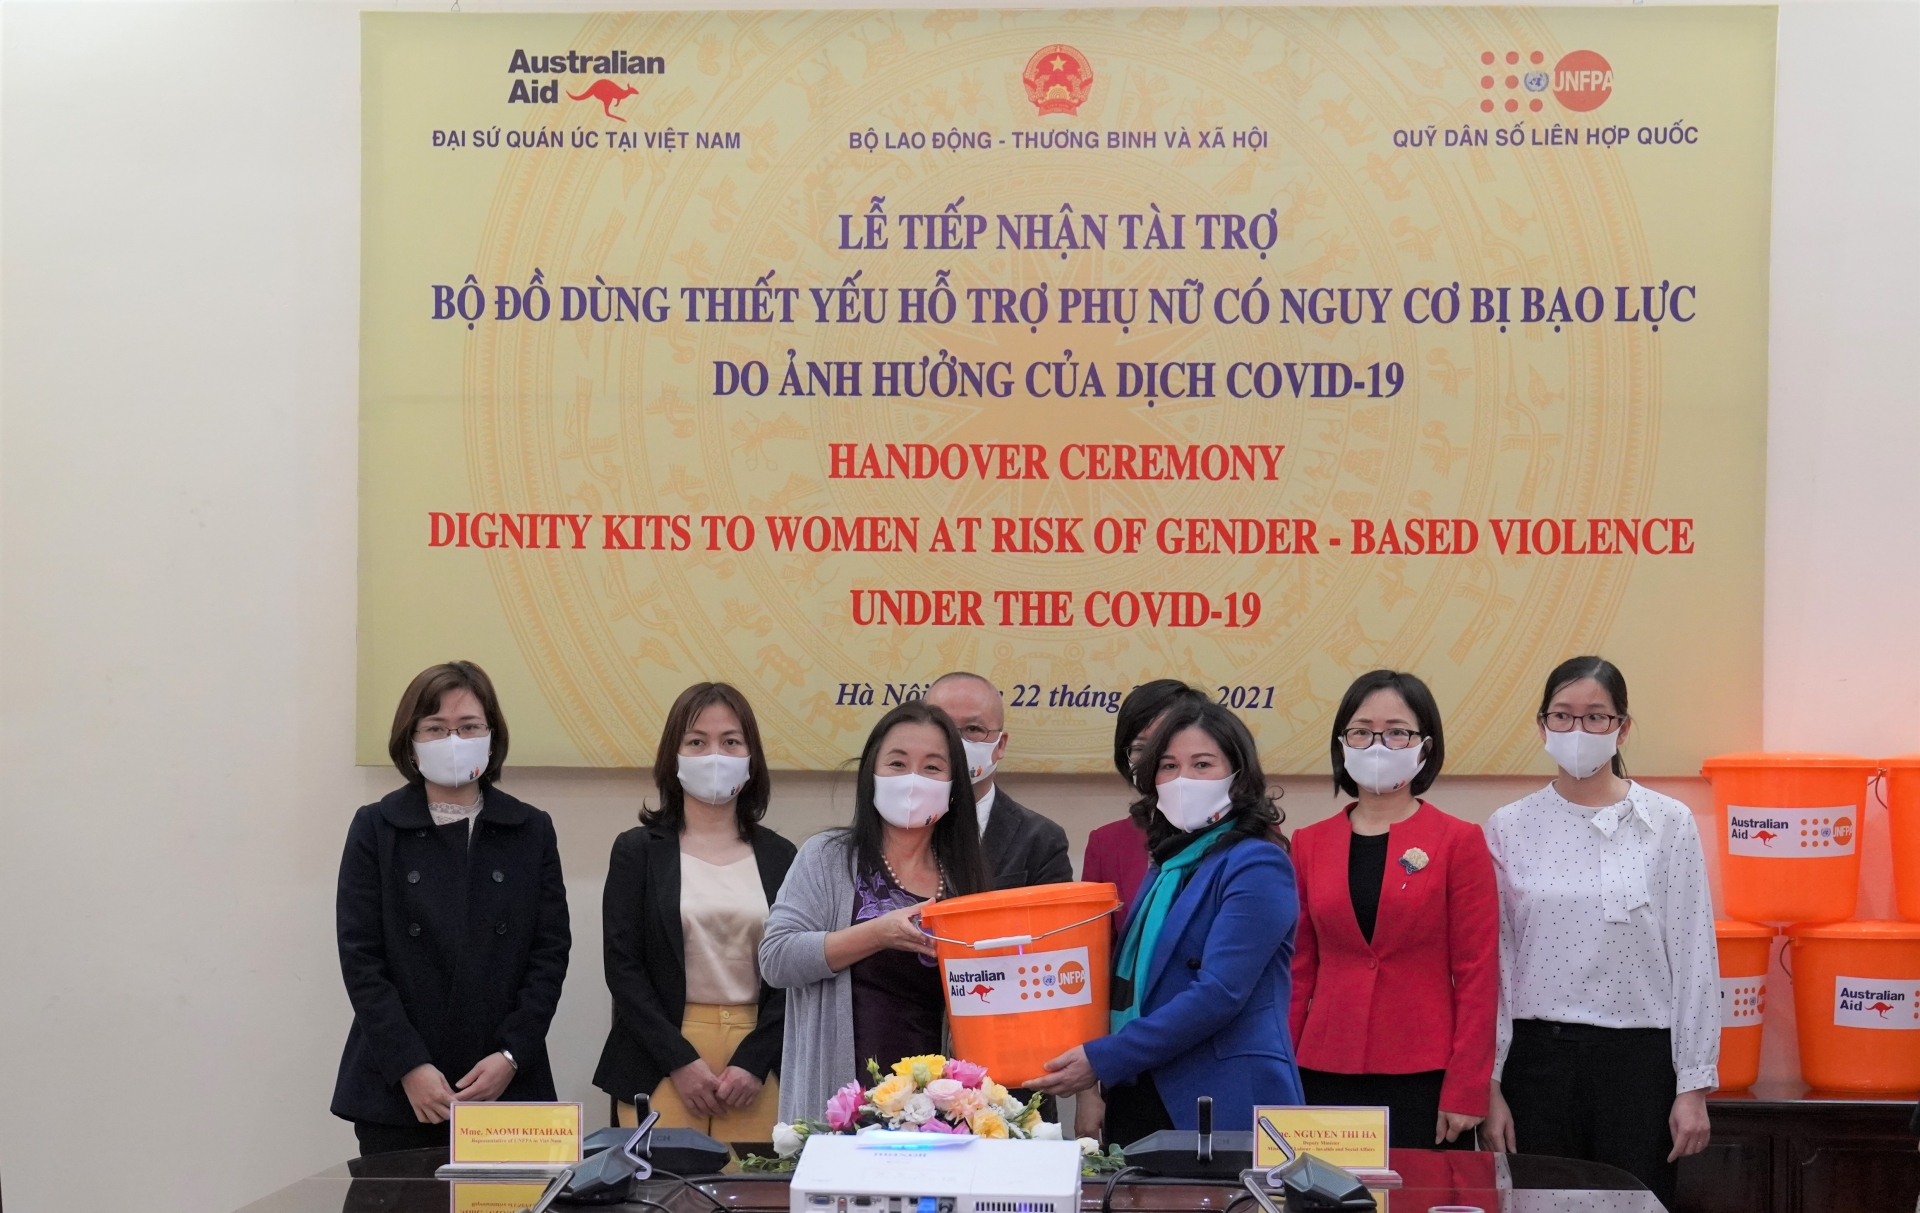 unfpa provides 2750 dignity kits to support women and girls at risk of violence